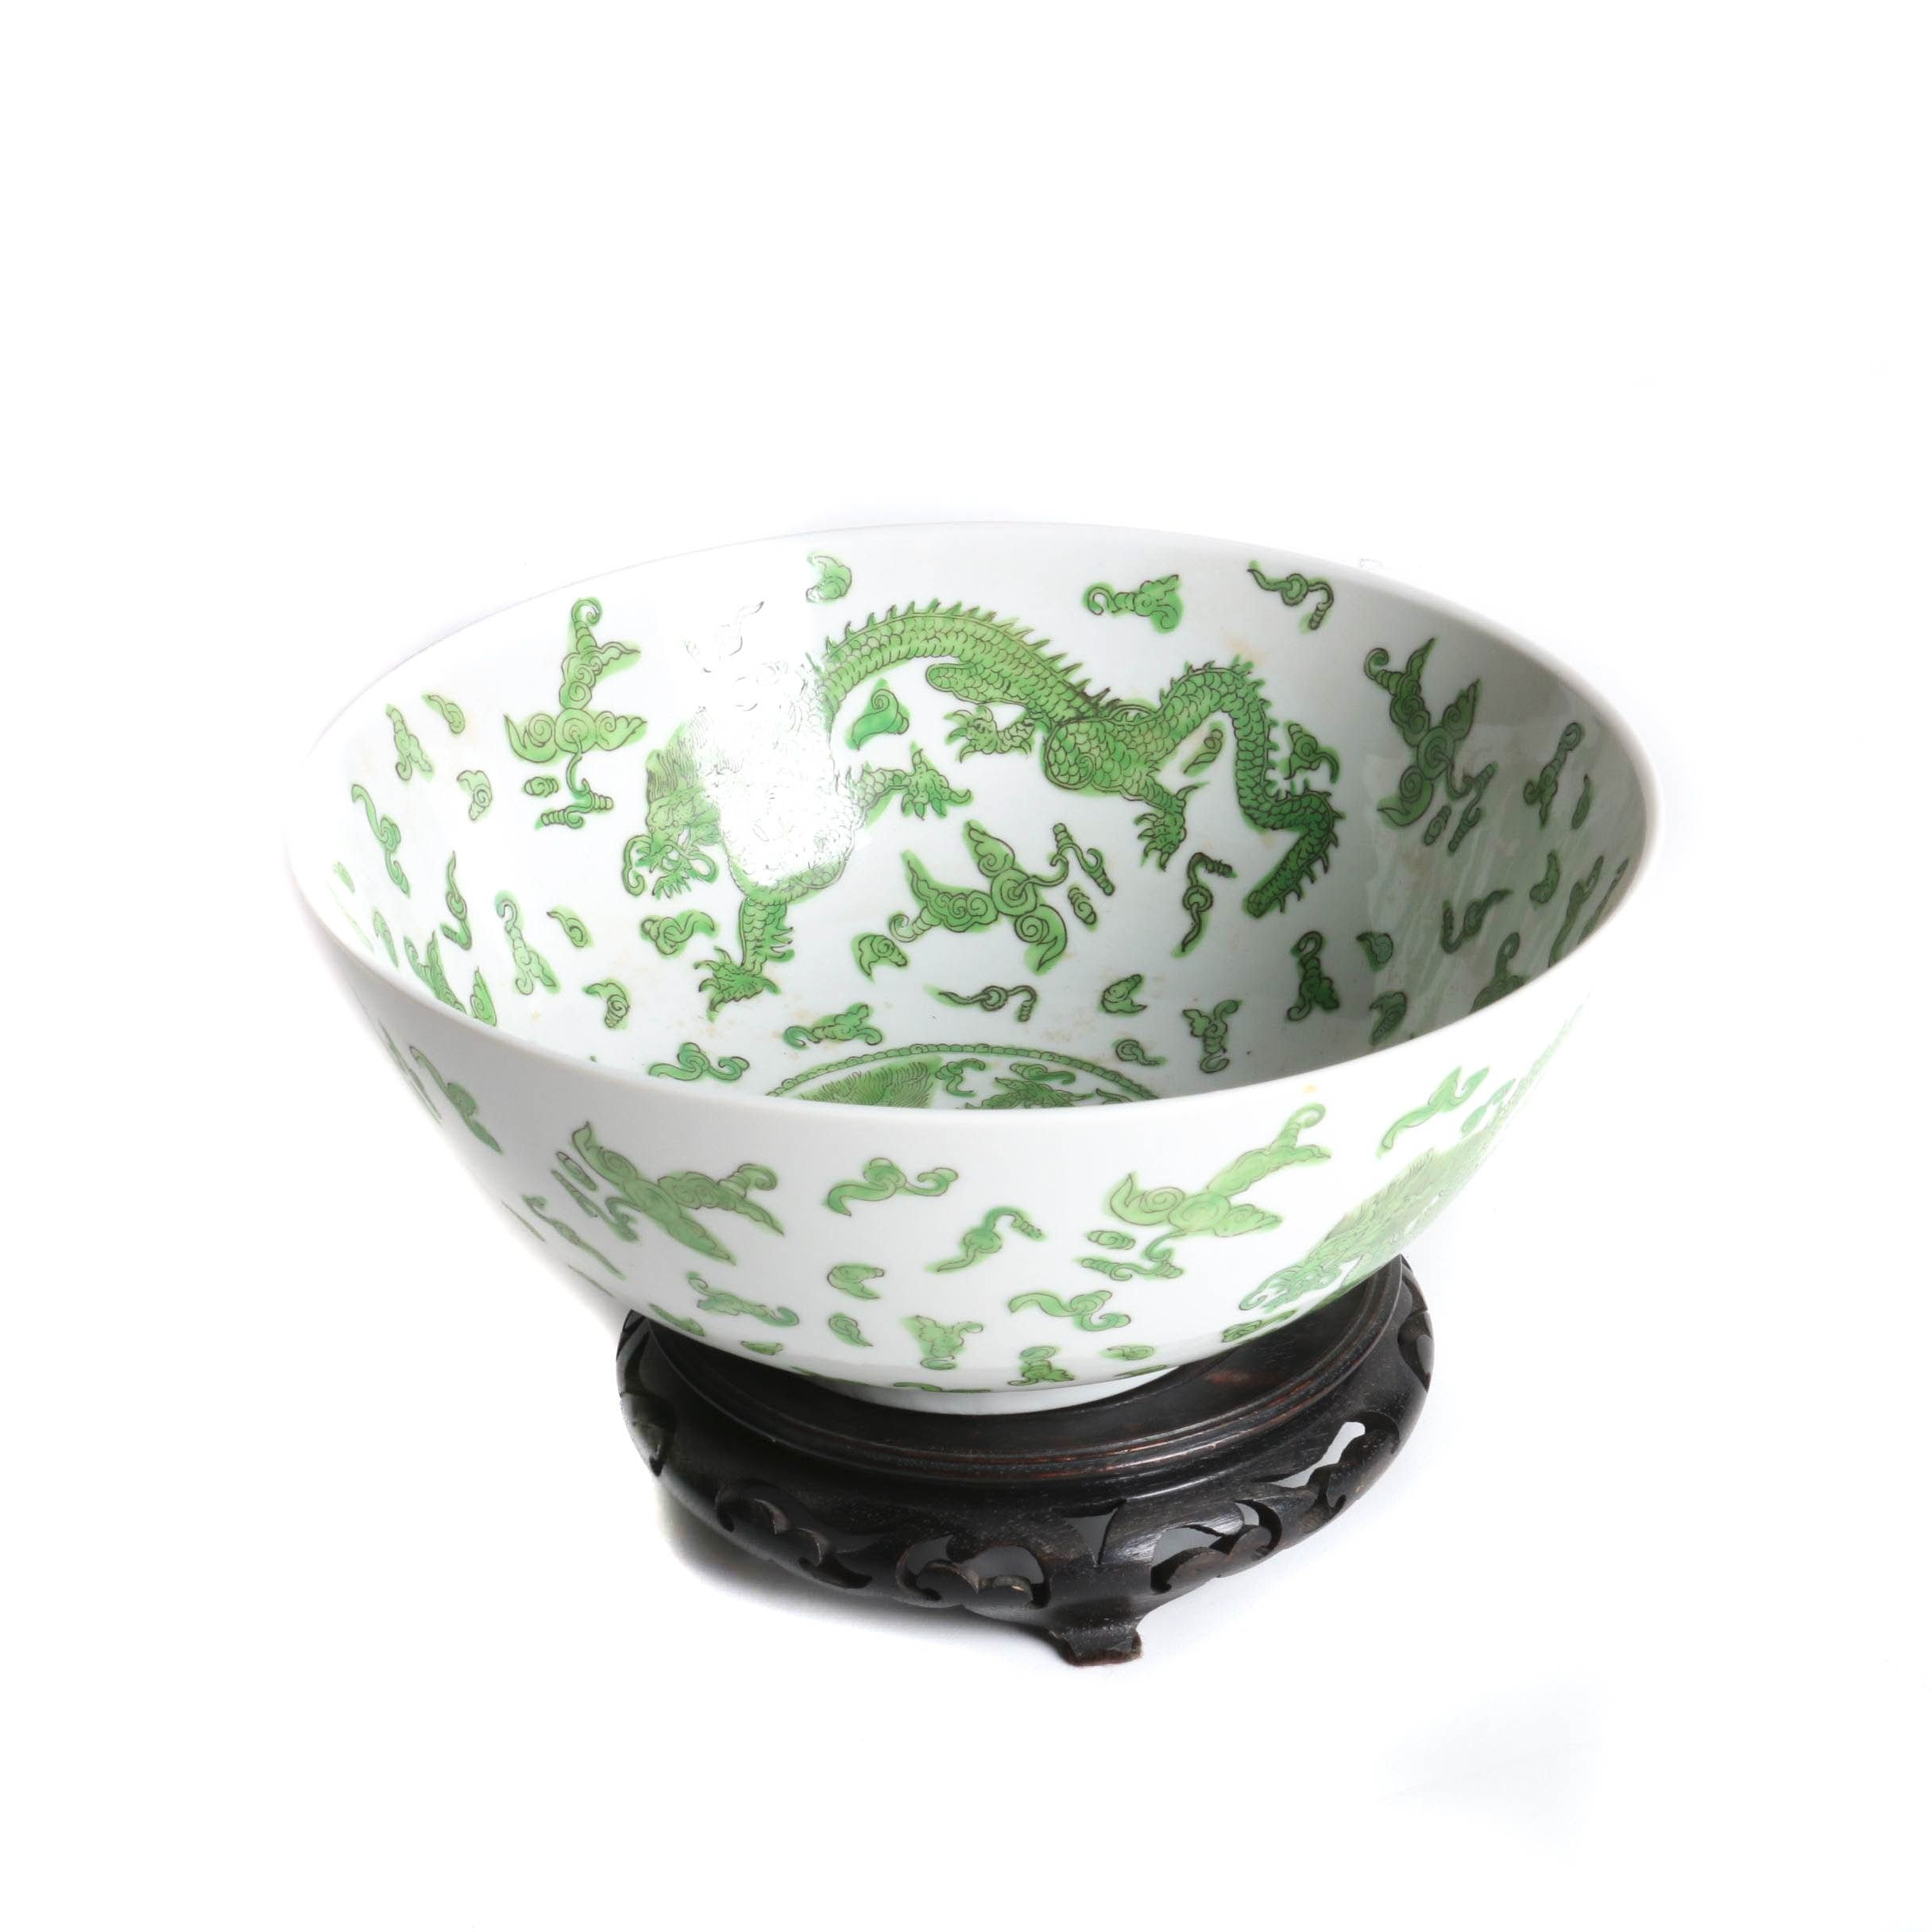 Chinese Green and White Porcelain Bowl with a Dragon Motif and a Wooden Stand